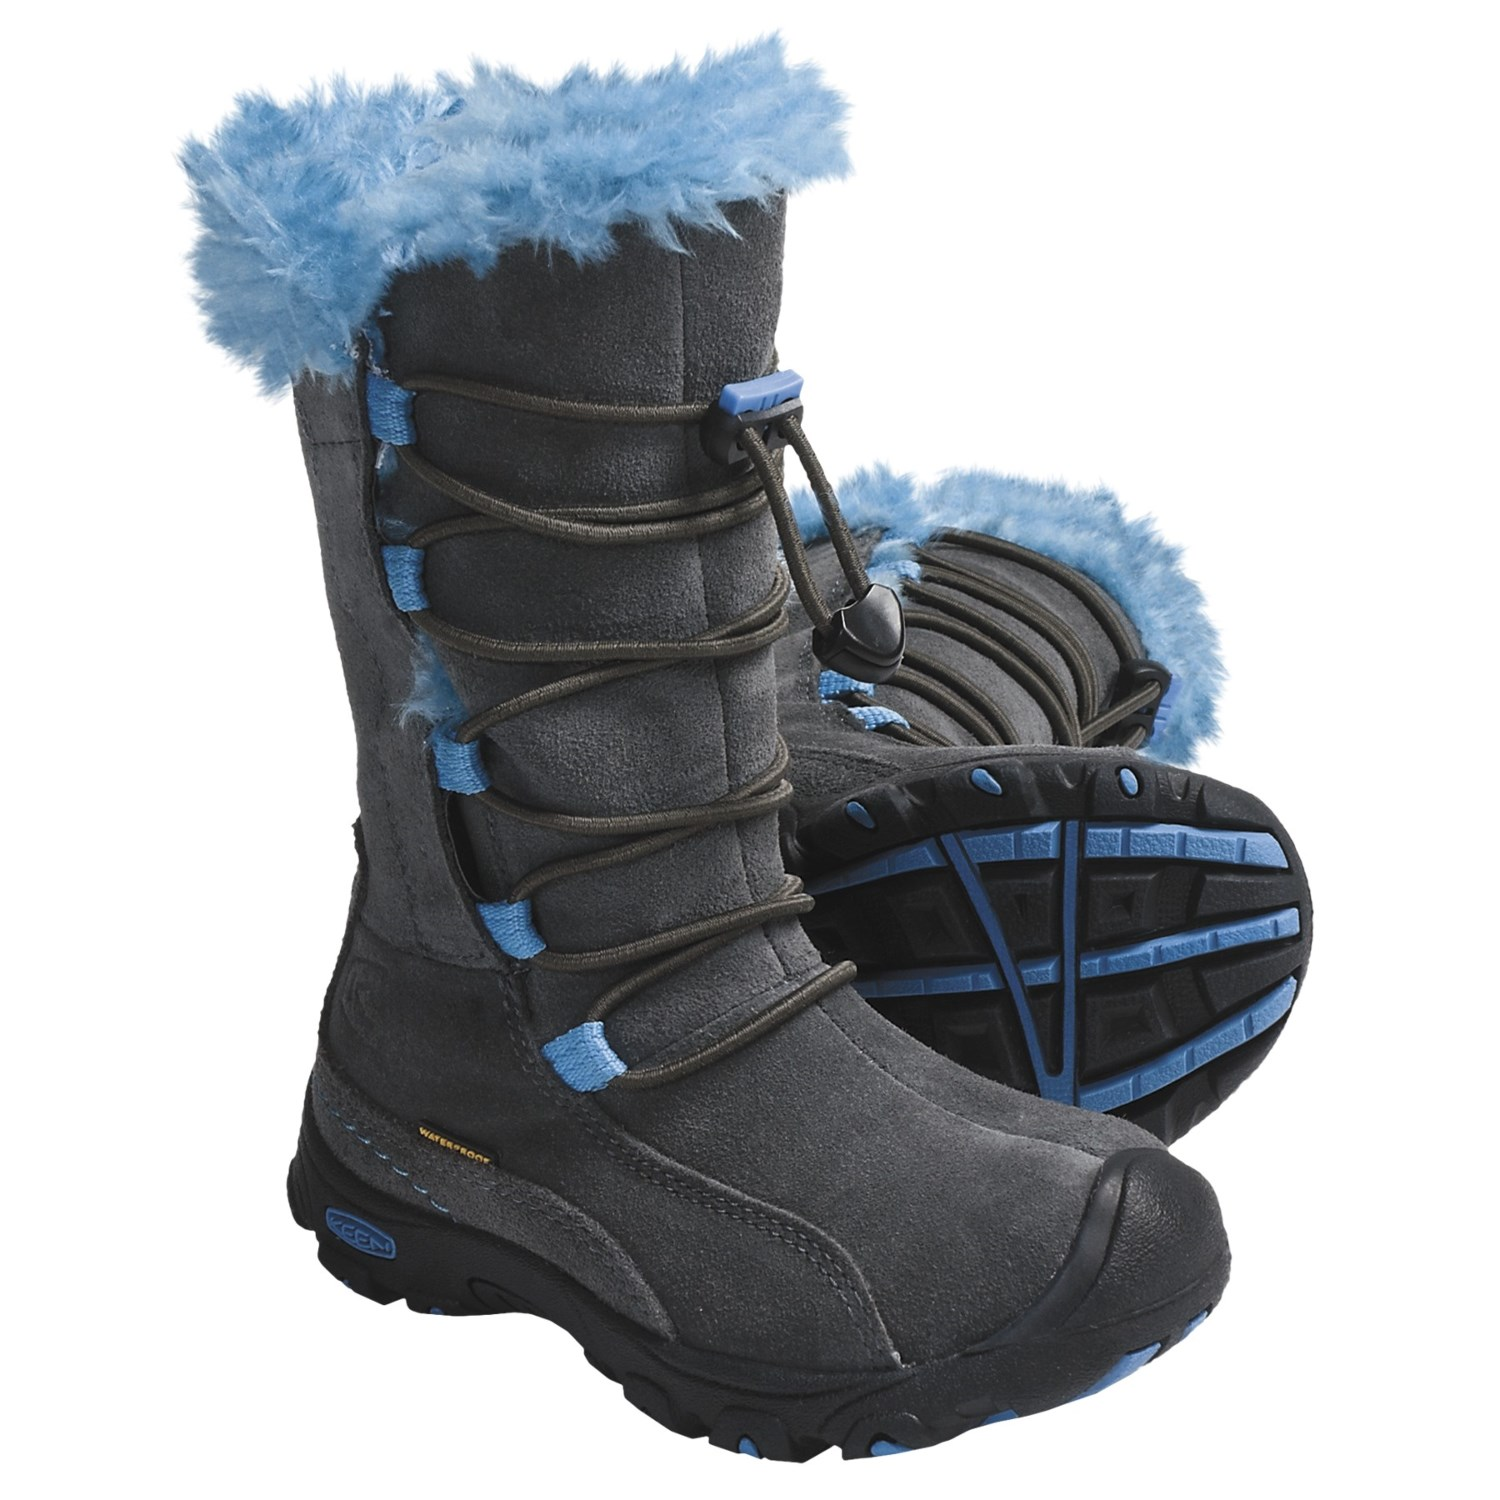 Keen Brighton Winter Boots (For Kids and Youth) 4687X ...